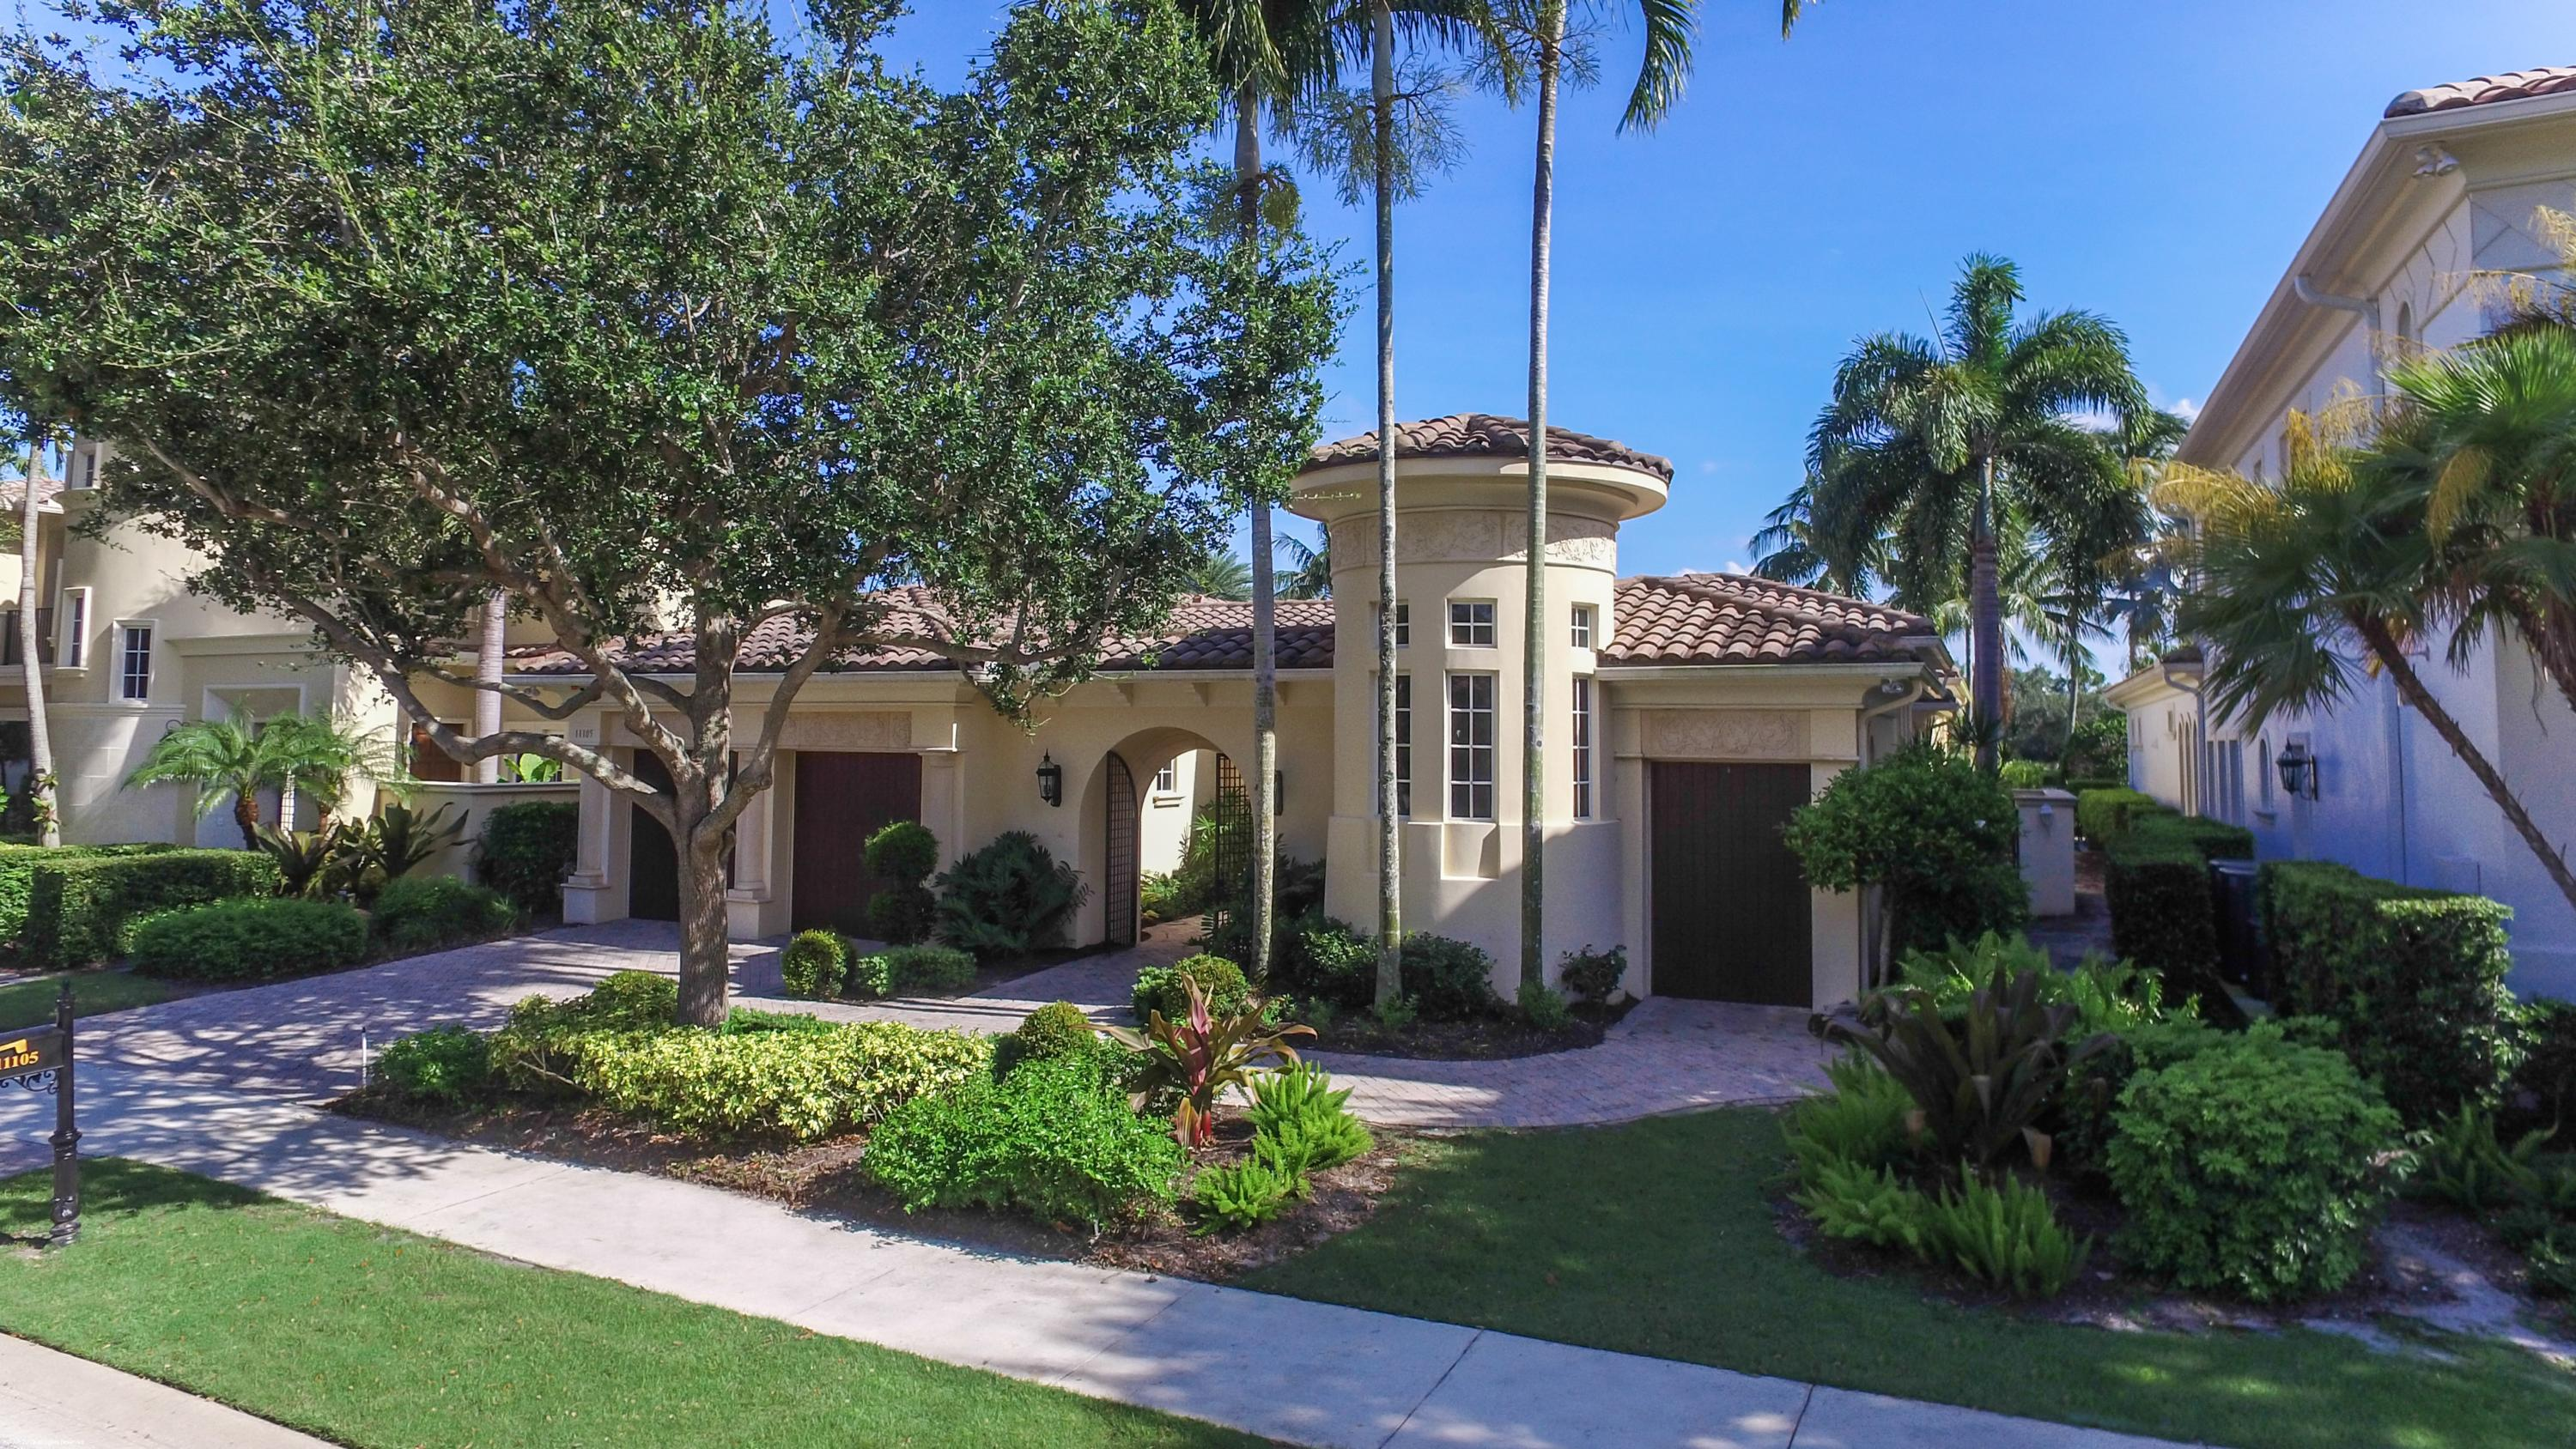 11105 Green Bayberry Drive, Palm Beach Gardens, Florida 33418, 3 Bedrooms Bedrooms, ,3.2 BathroomsBathrooms,Single Family,For Sale,Old Palm Golf Club,Green Bayberry,RX-10543336